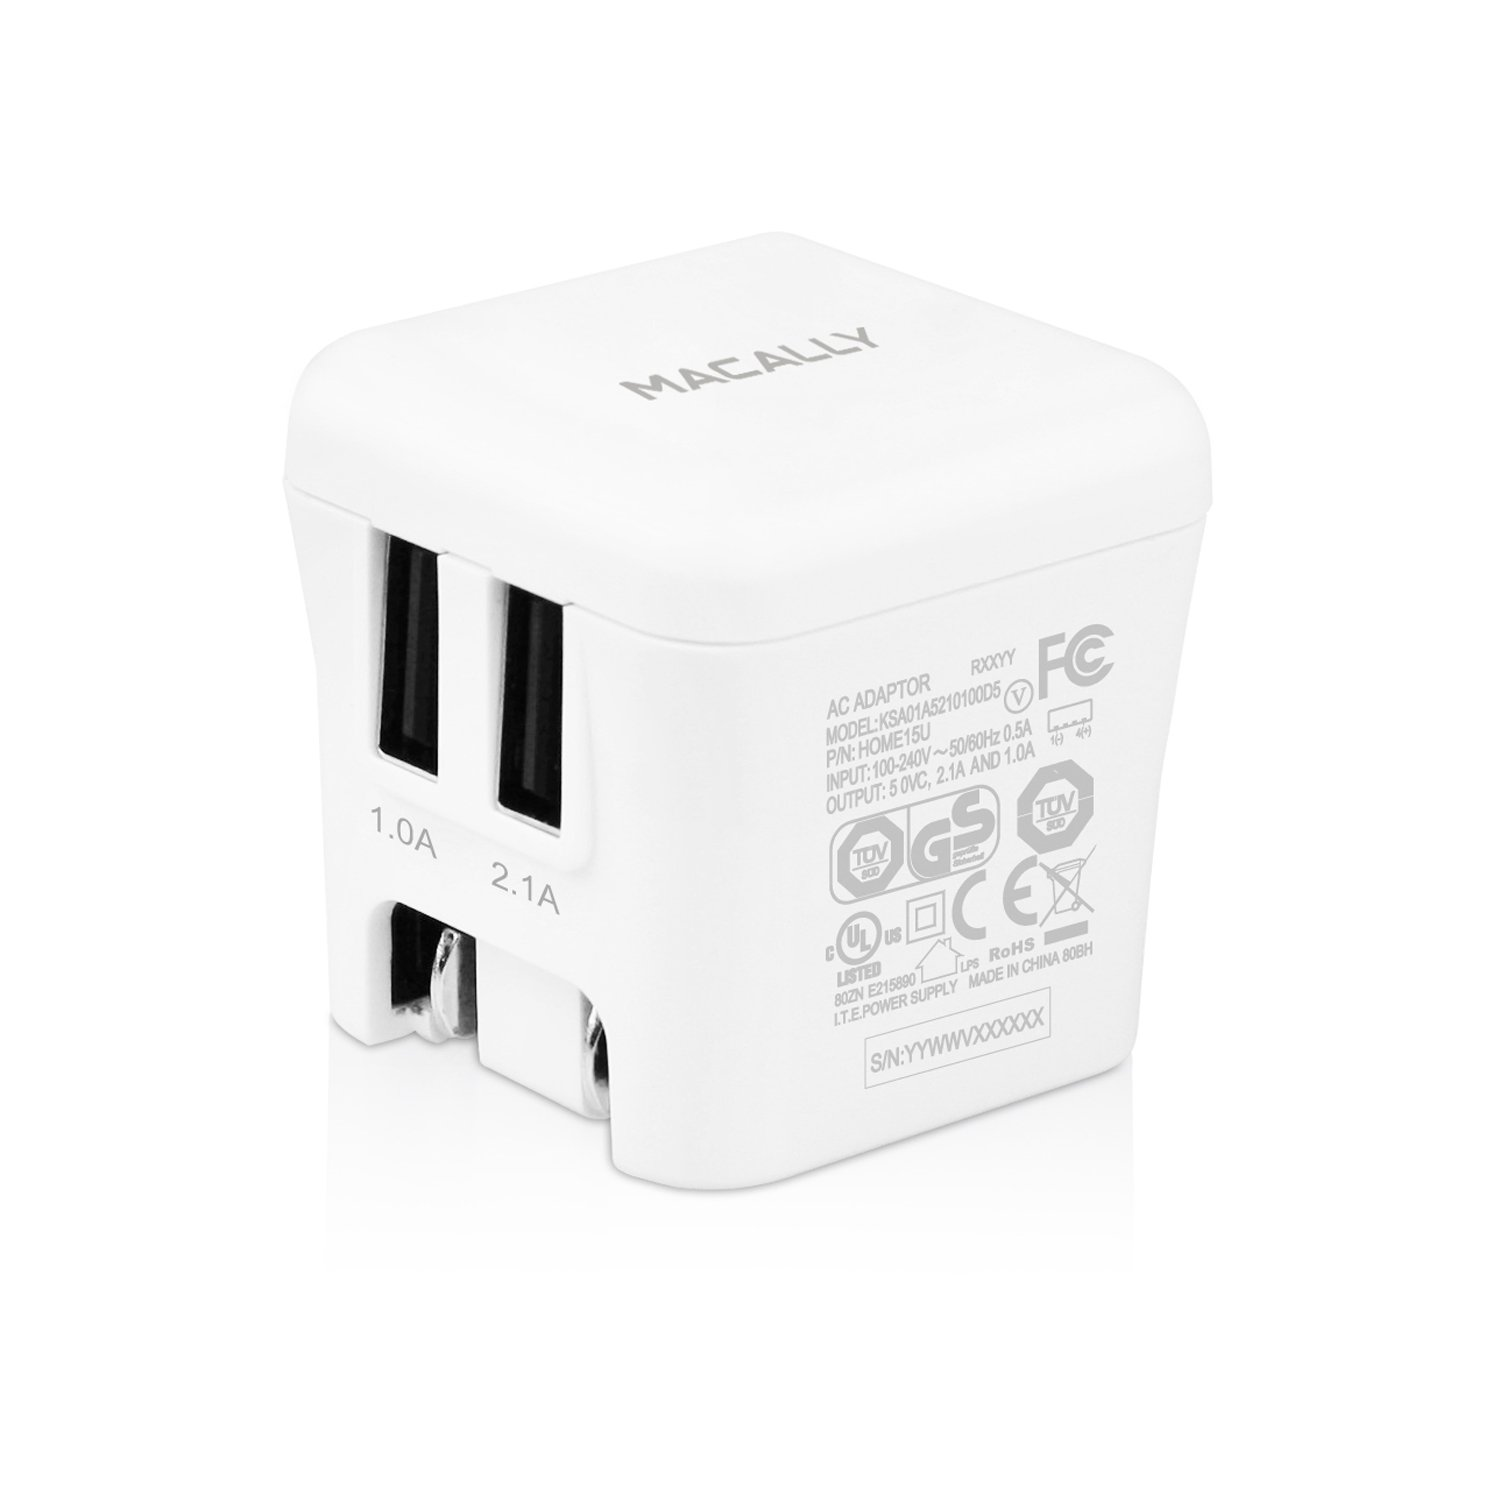 Macally Home15U 15W Two USB Port Wall Charger for iPhone, iPad, iPod, Smartphones and Tablets - Travel Charger - Retail Packaging - White